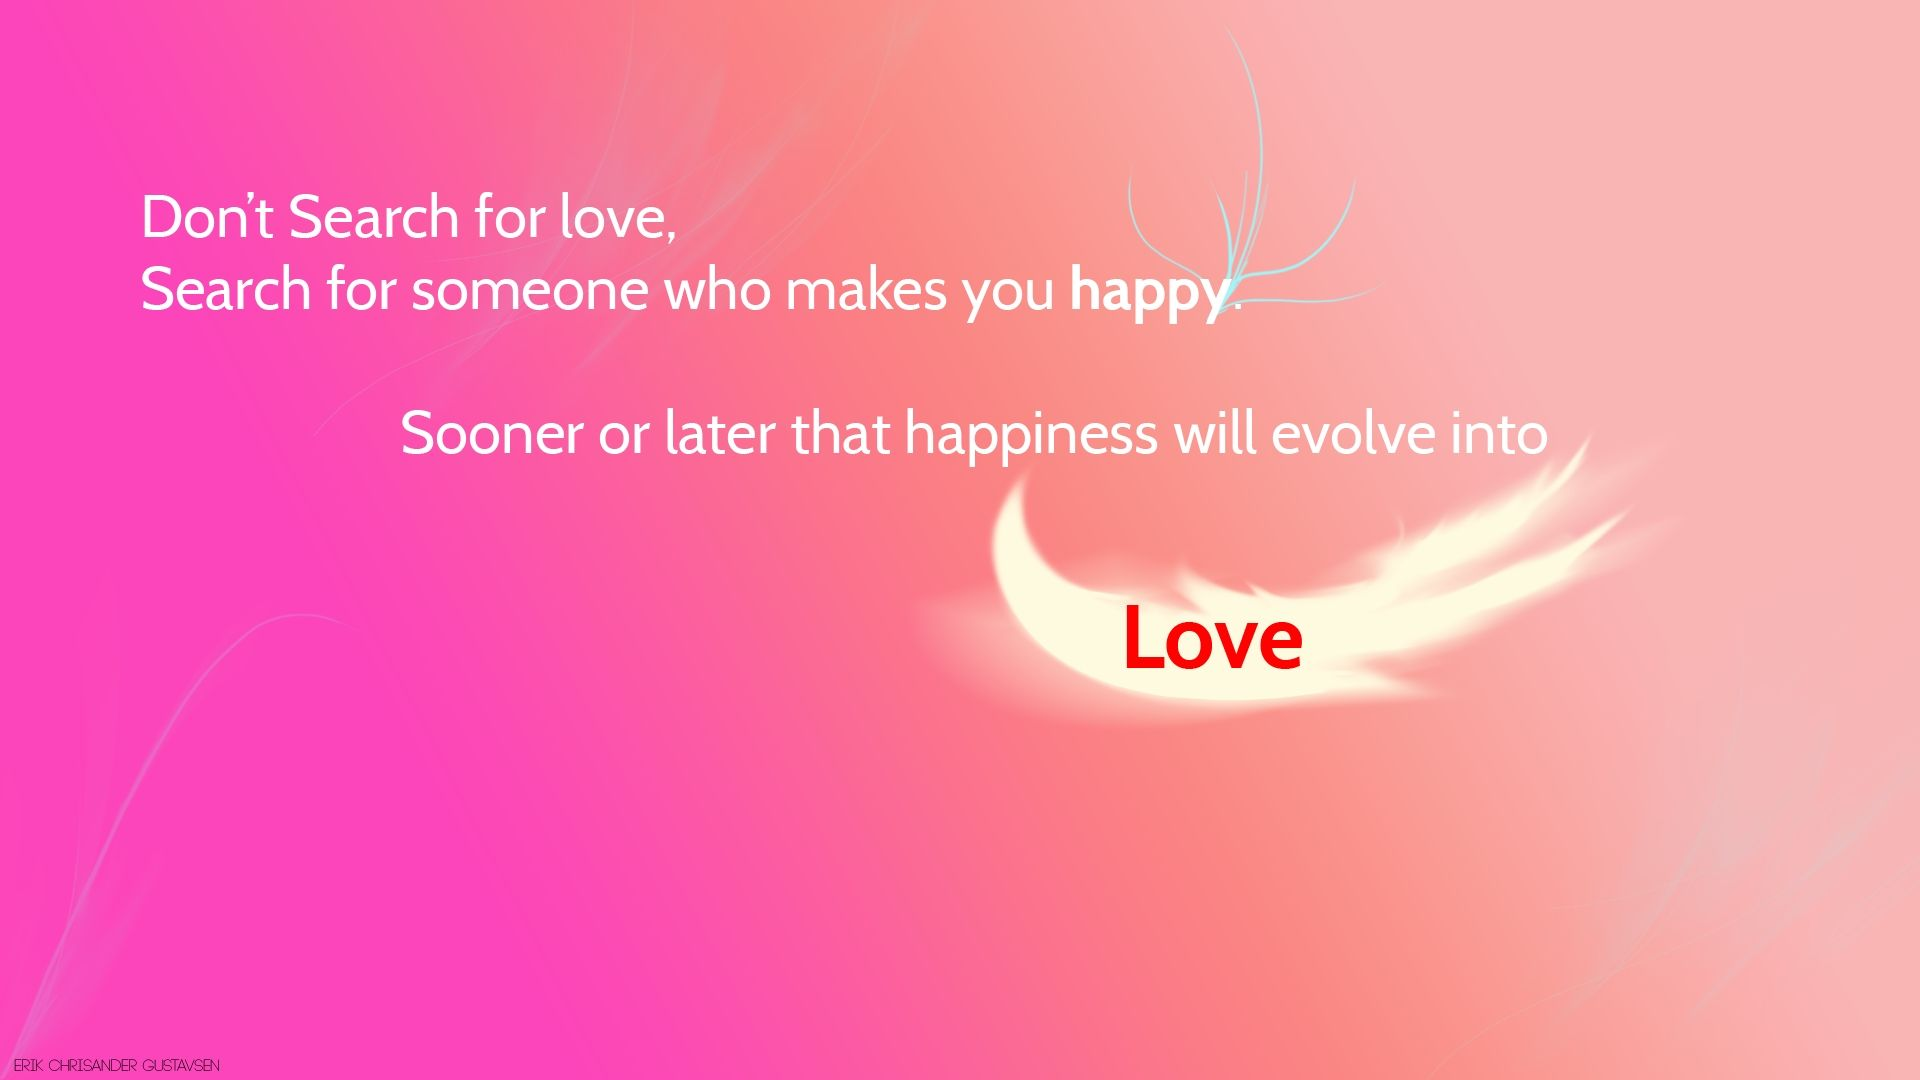 Love Quotes Hd Background Http Wallpapers And Backgrounds Net Love Quotes Hd Background Love Quotes For Whatsapp Love Quotes Love Quotes Wallpaper